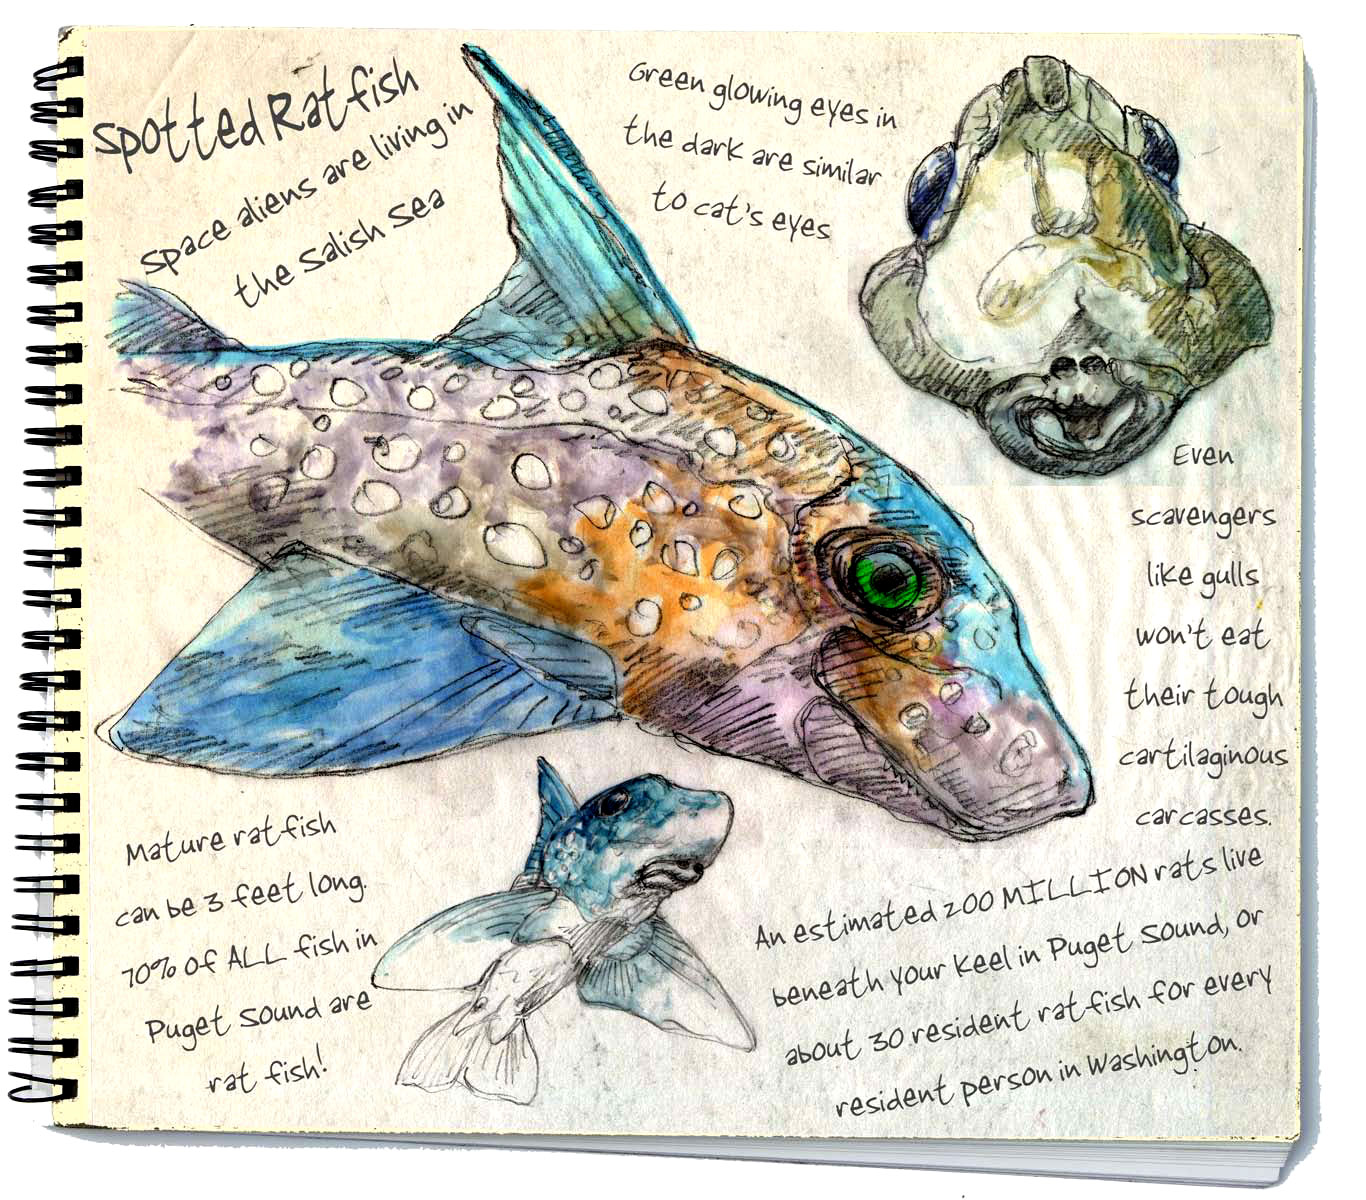 2014 5 Spotted Ratfish Space Aliens The Art Of Larry